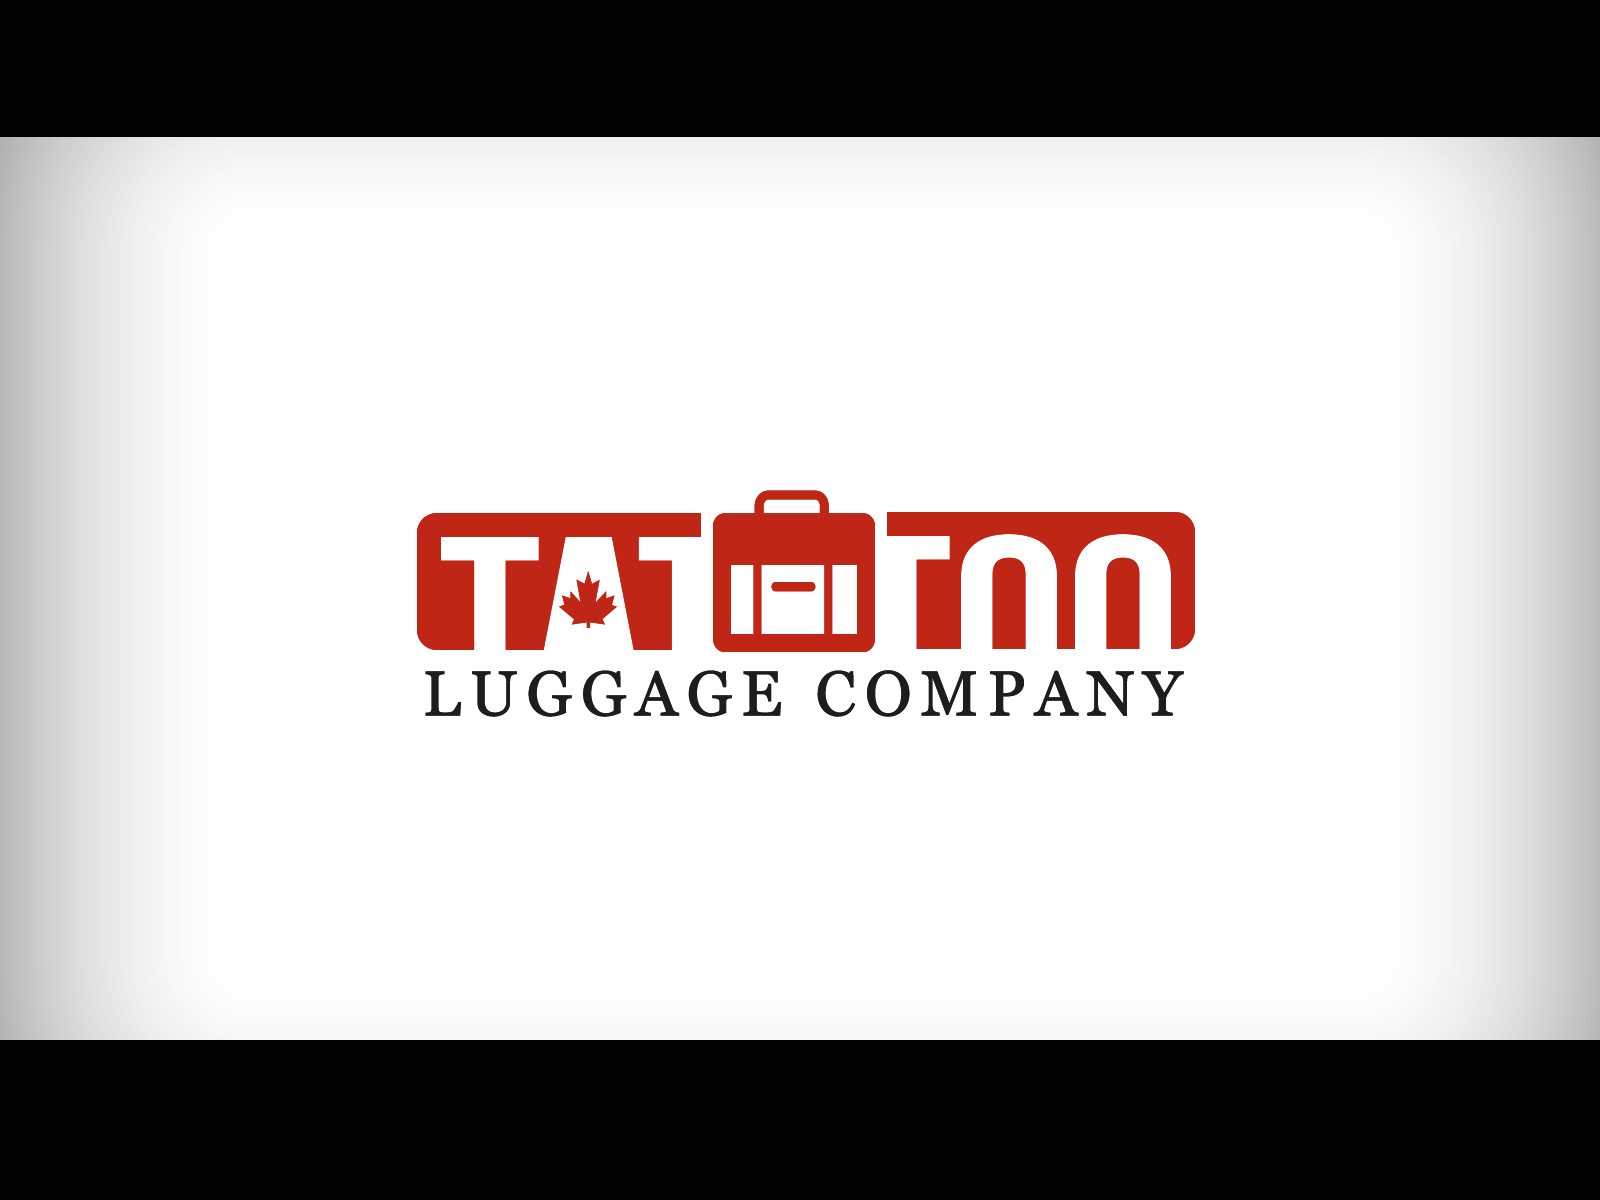 Logo Design by Virgilio Pineda III - Entry No. 172 in the Logo Design Contest Artistic Logo Design for Tattoo Luggage Company.